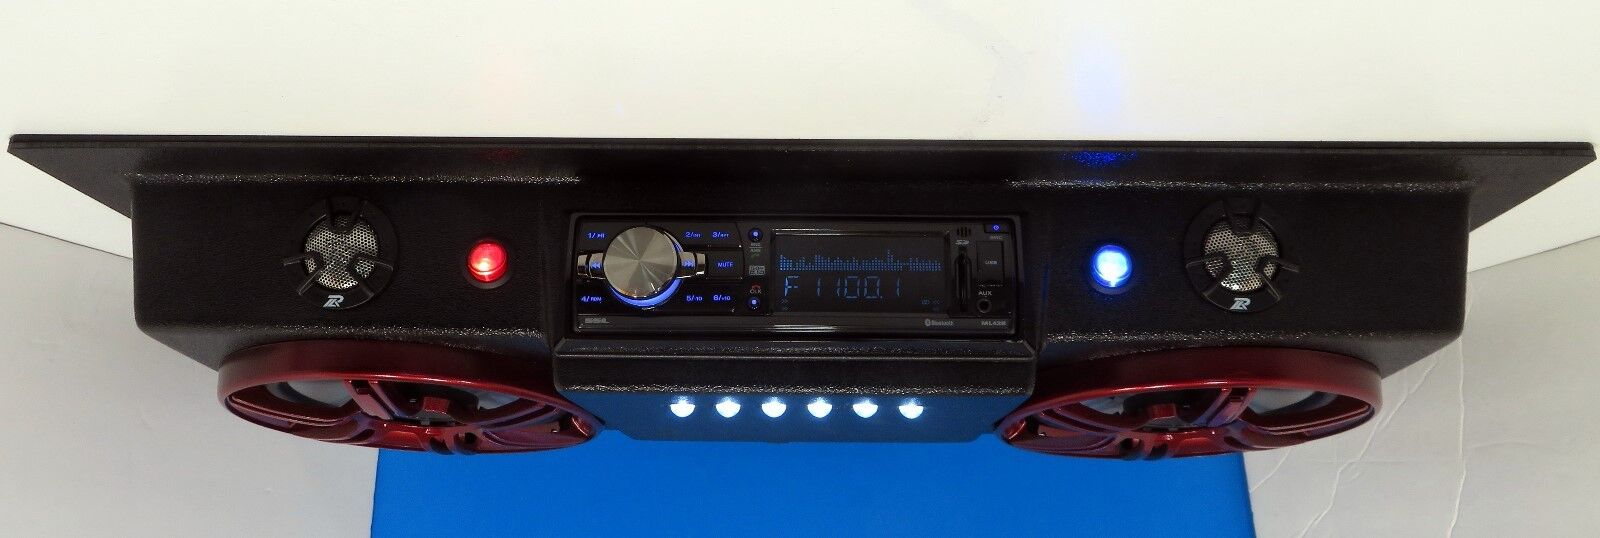 Golf Cart Radio Polaris EZGO Club Car Boat UTV Roof Mount Console Stereo Radio